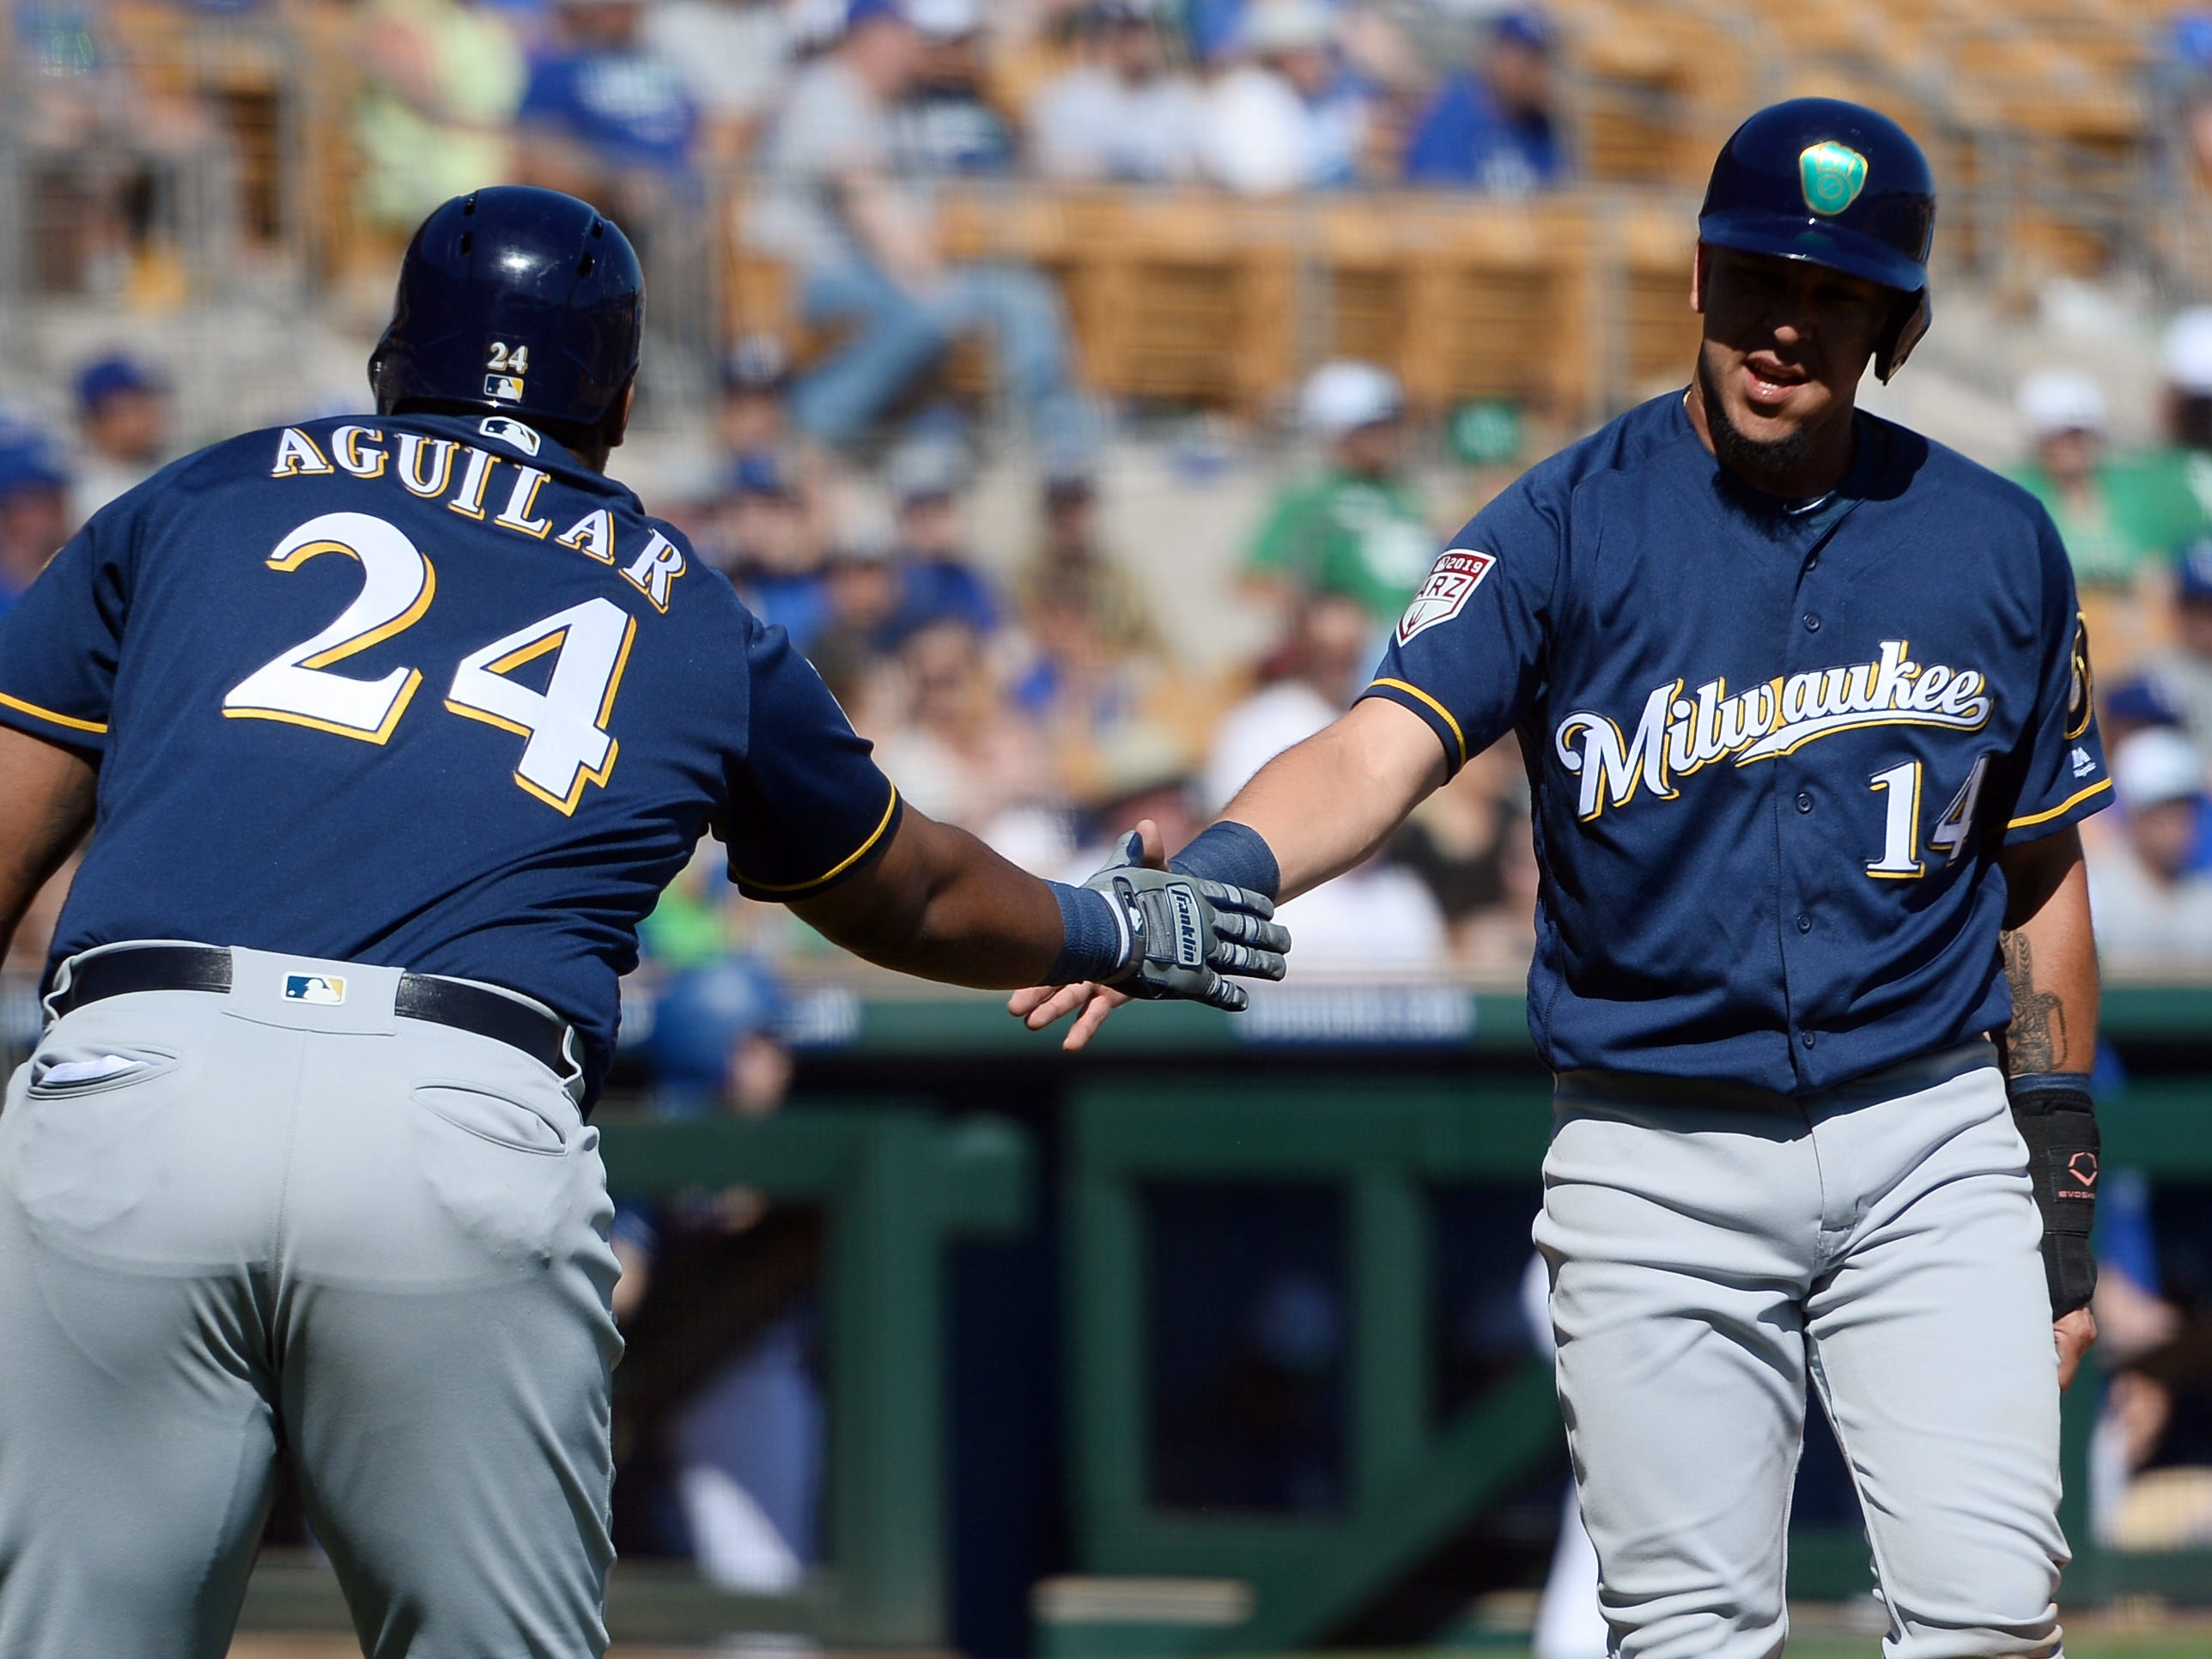 Hernan Perez is congratulated by Jesus Aguilar after scoring for the Brewers in the top of the fifth inning against the Dodgers.